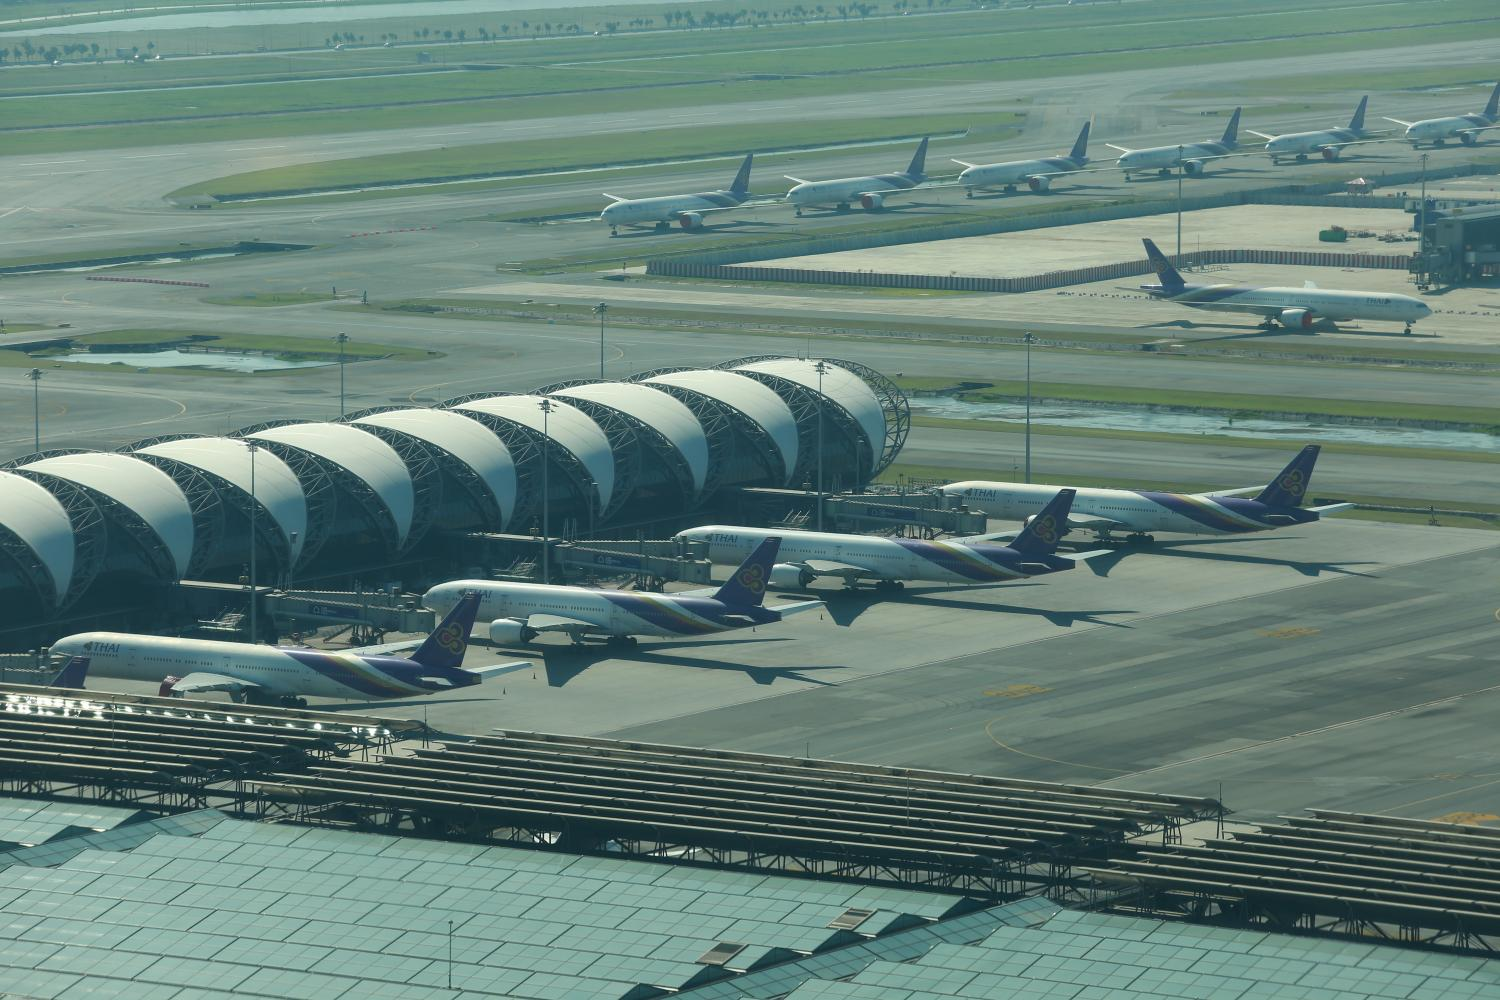 A fleet of Thai Airways airplanes are parked at Suvarnabhumi international airport. The aviation sector has been hard hit by the Covid-19 pandemic.Somchai Poomlard